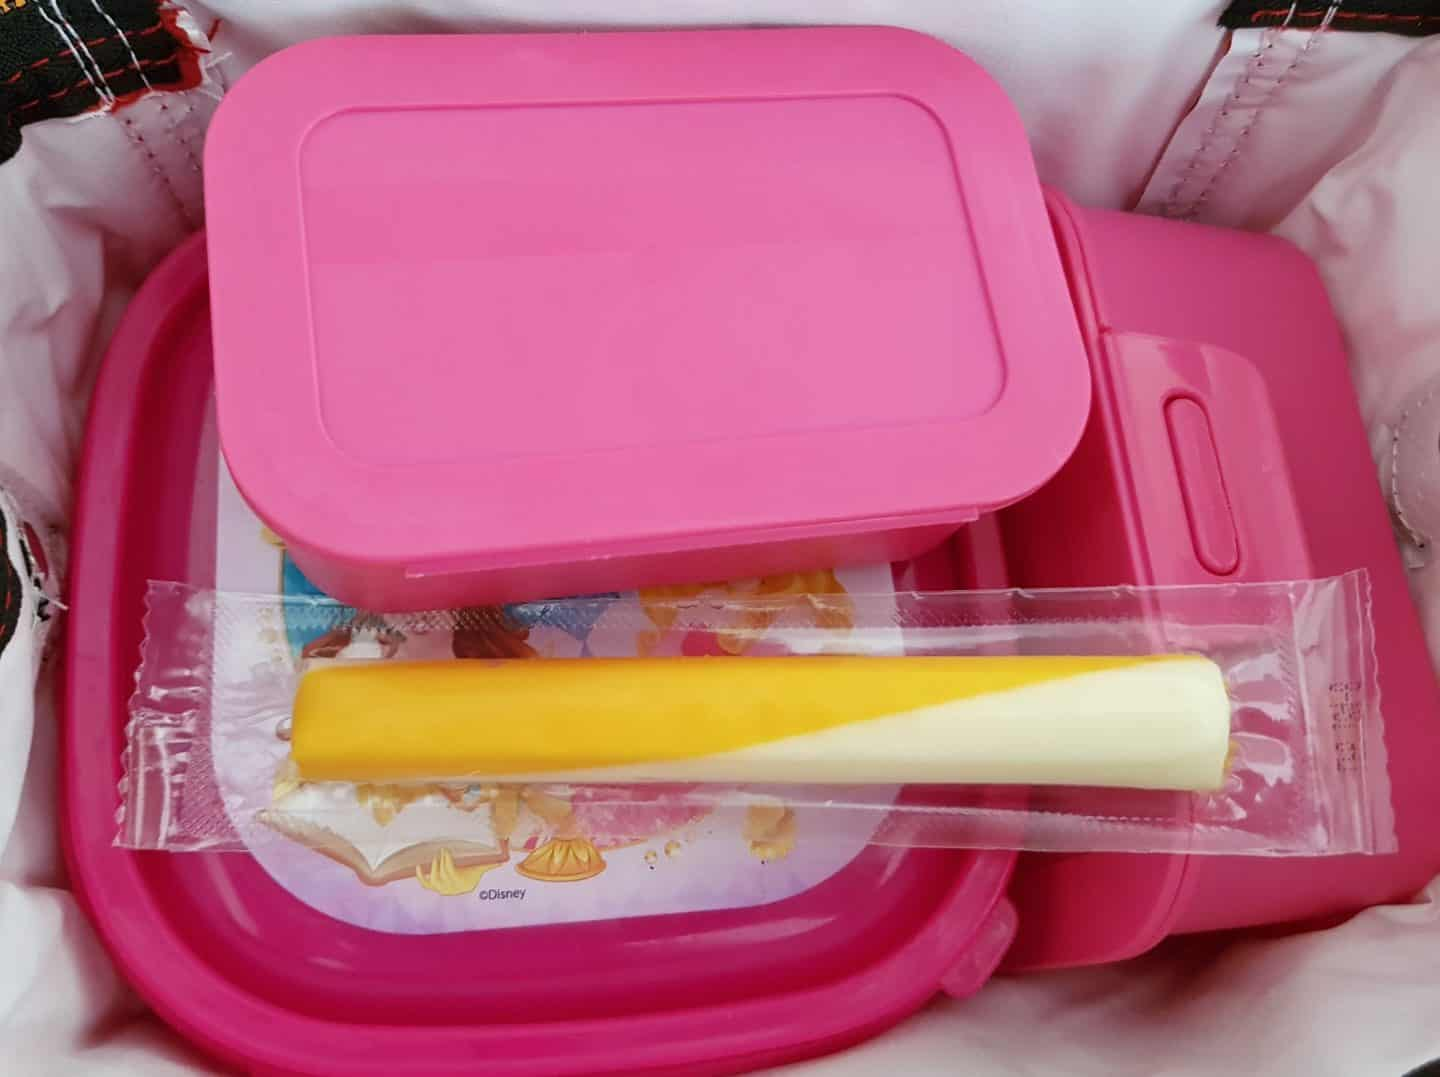 Pik-Nik cheese sticks in a lunchbox